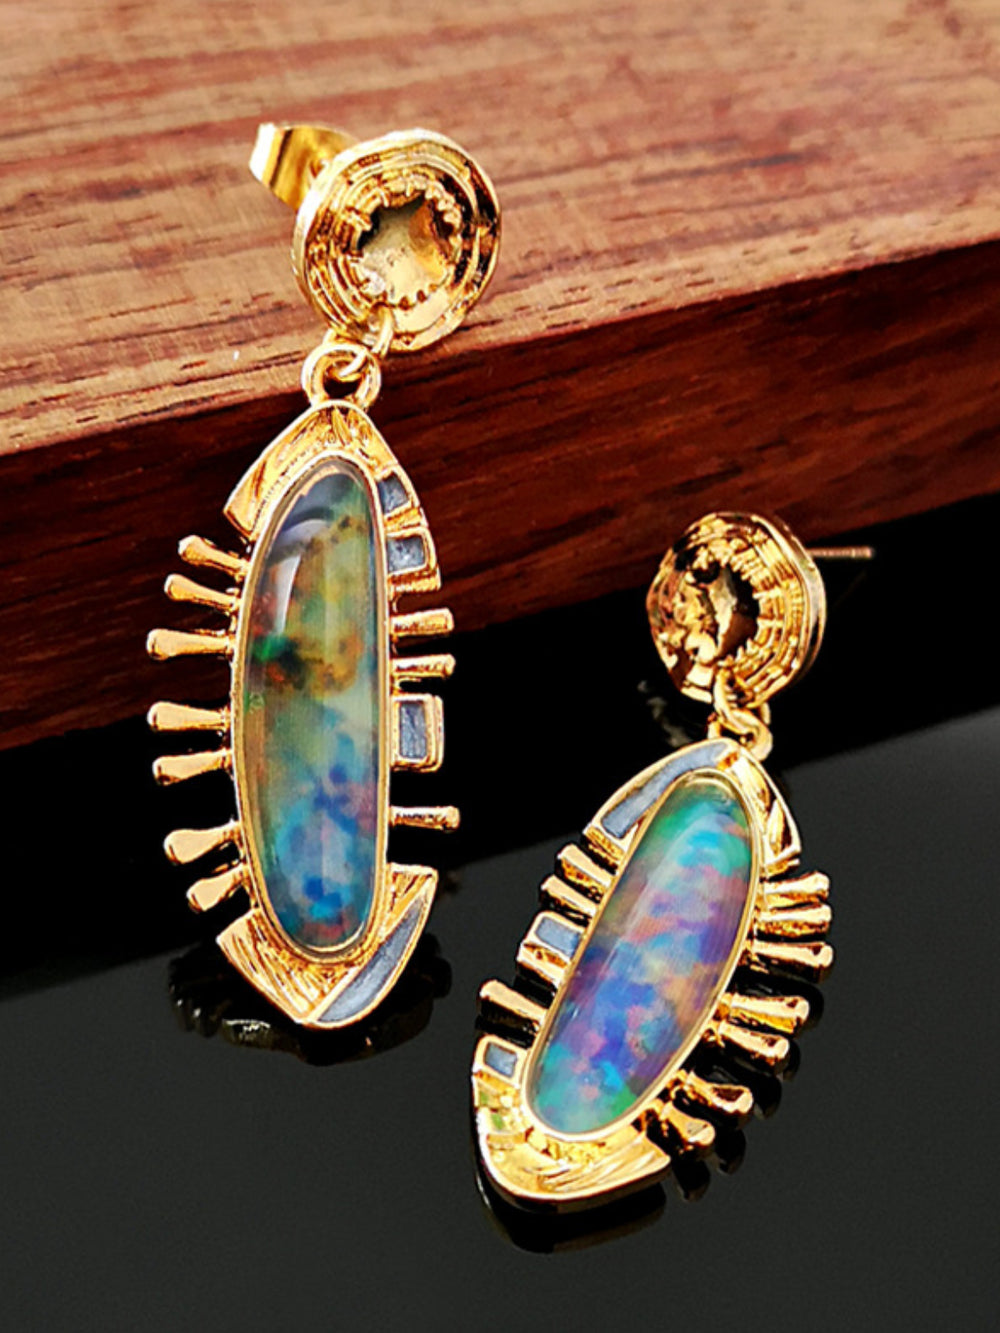 Artistic Vintage Elegant Earrings